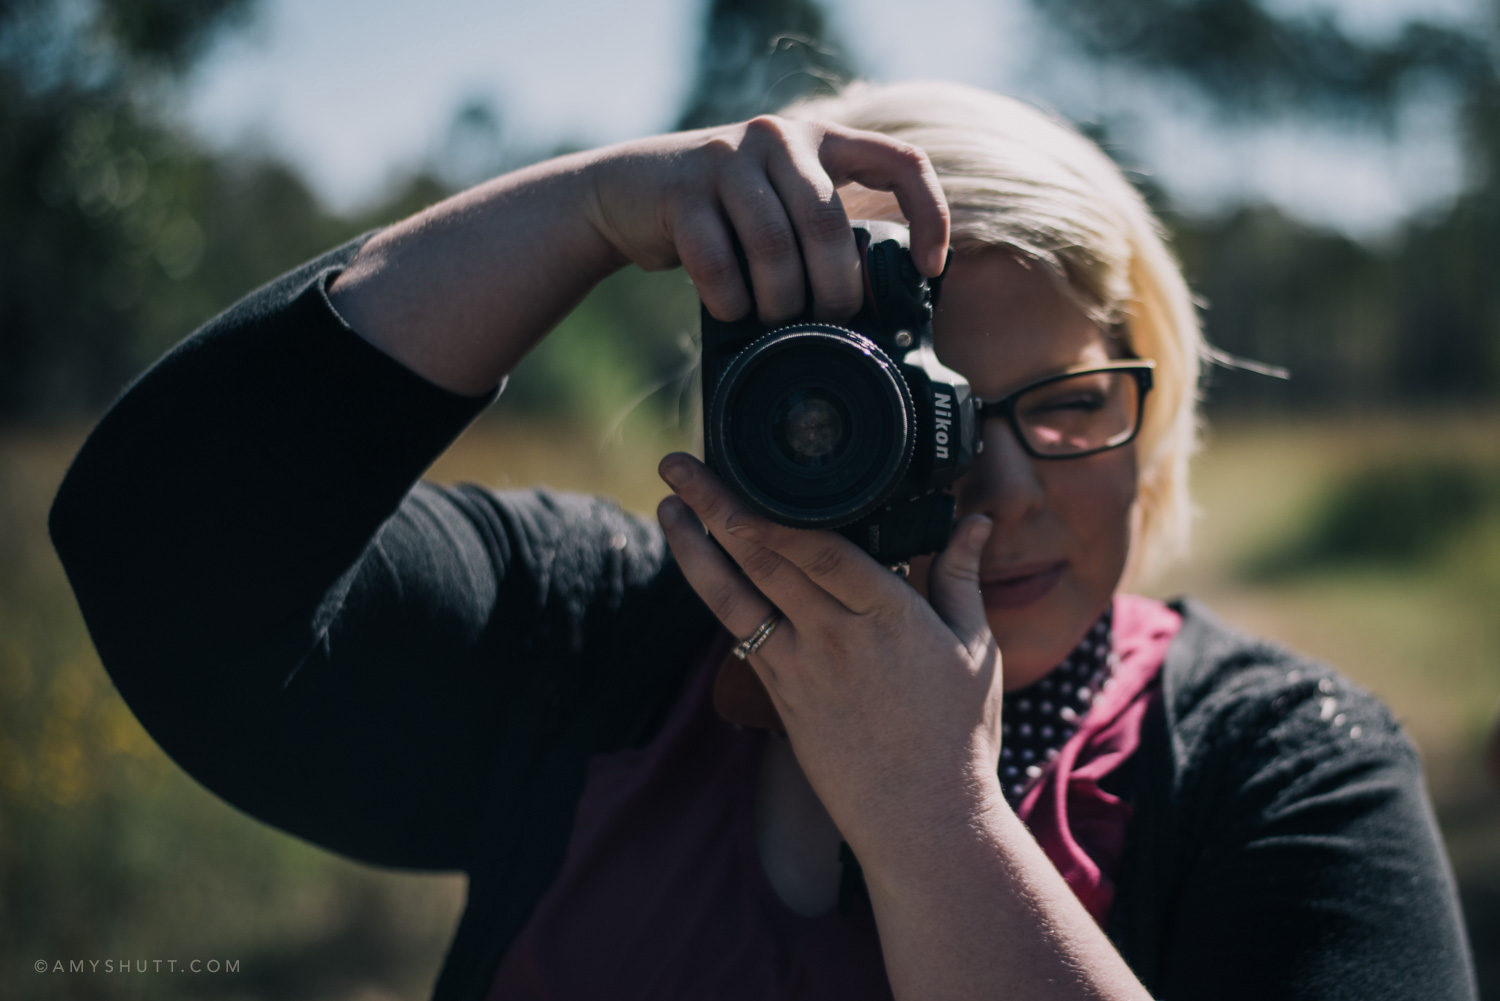 Student Sarah enjoys a day out photographing nature and wildlife